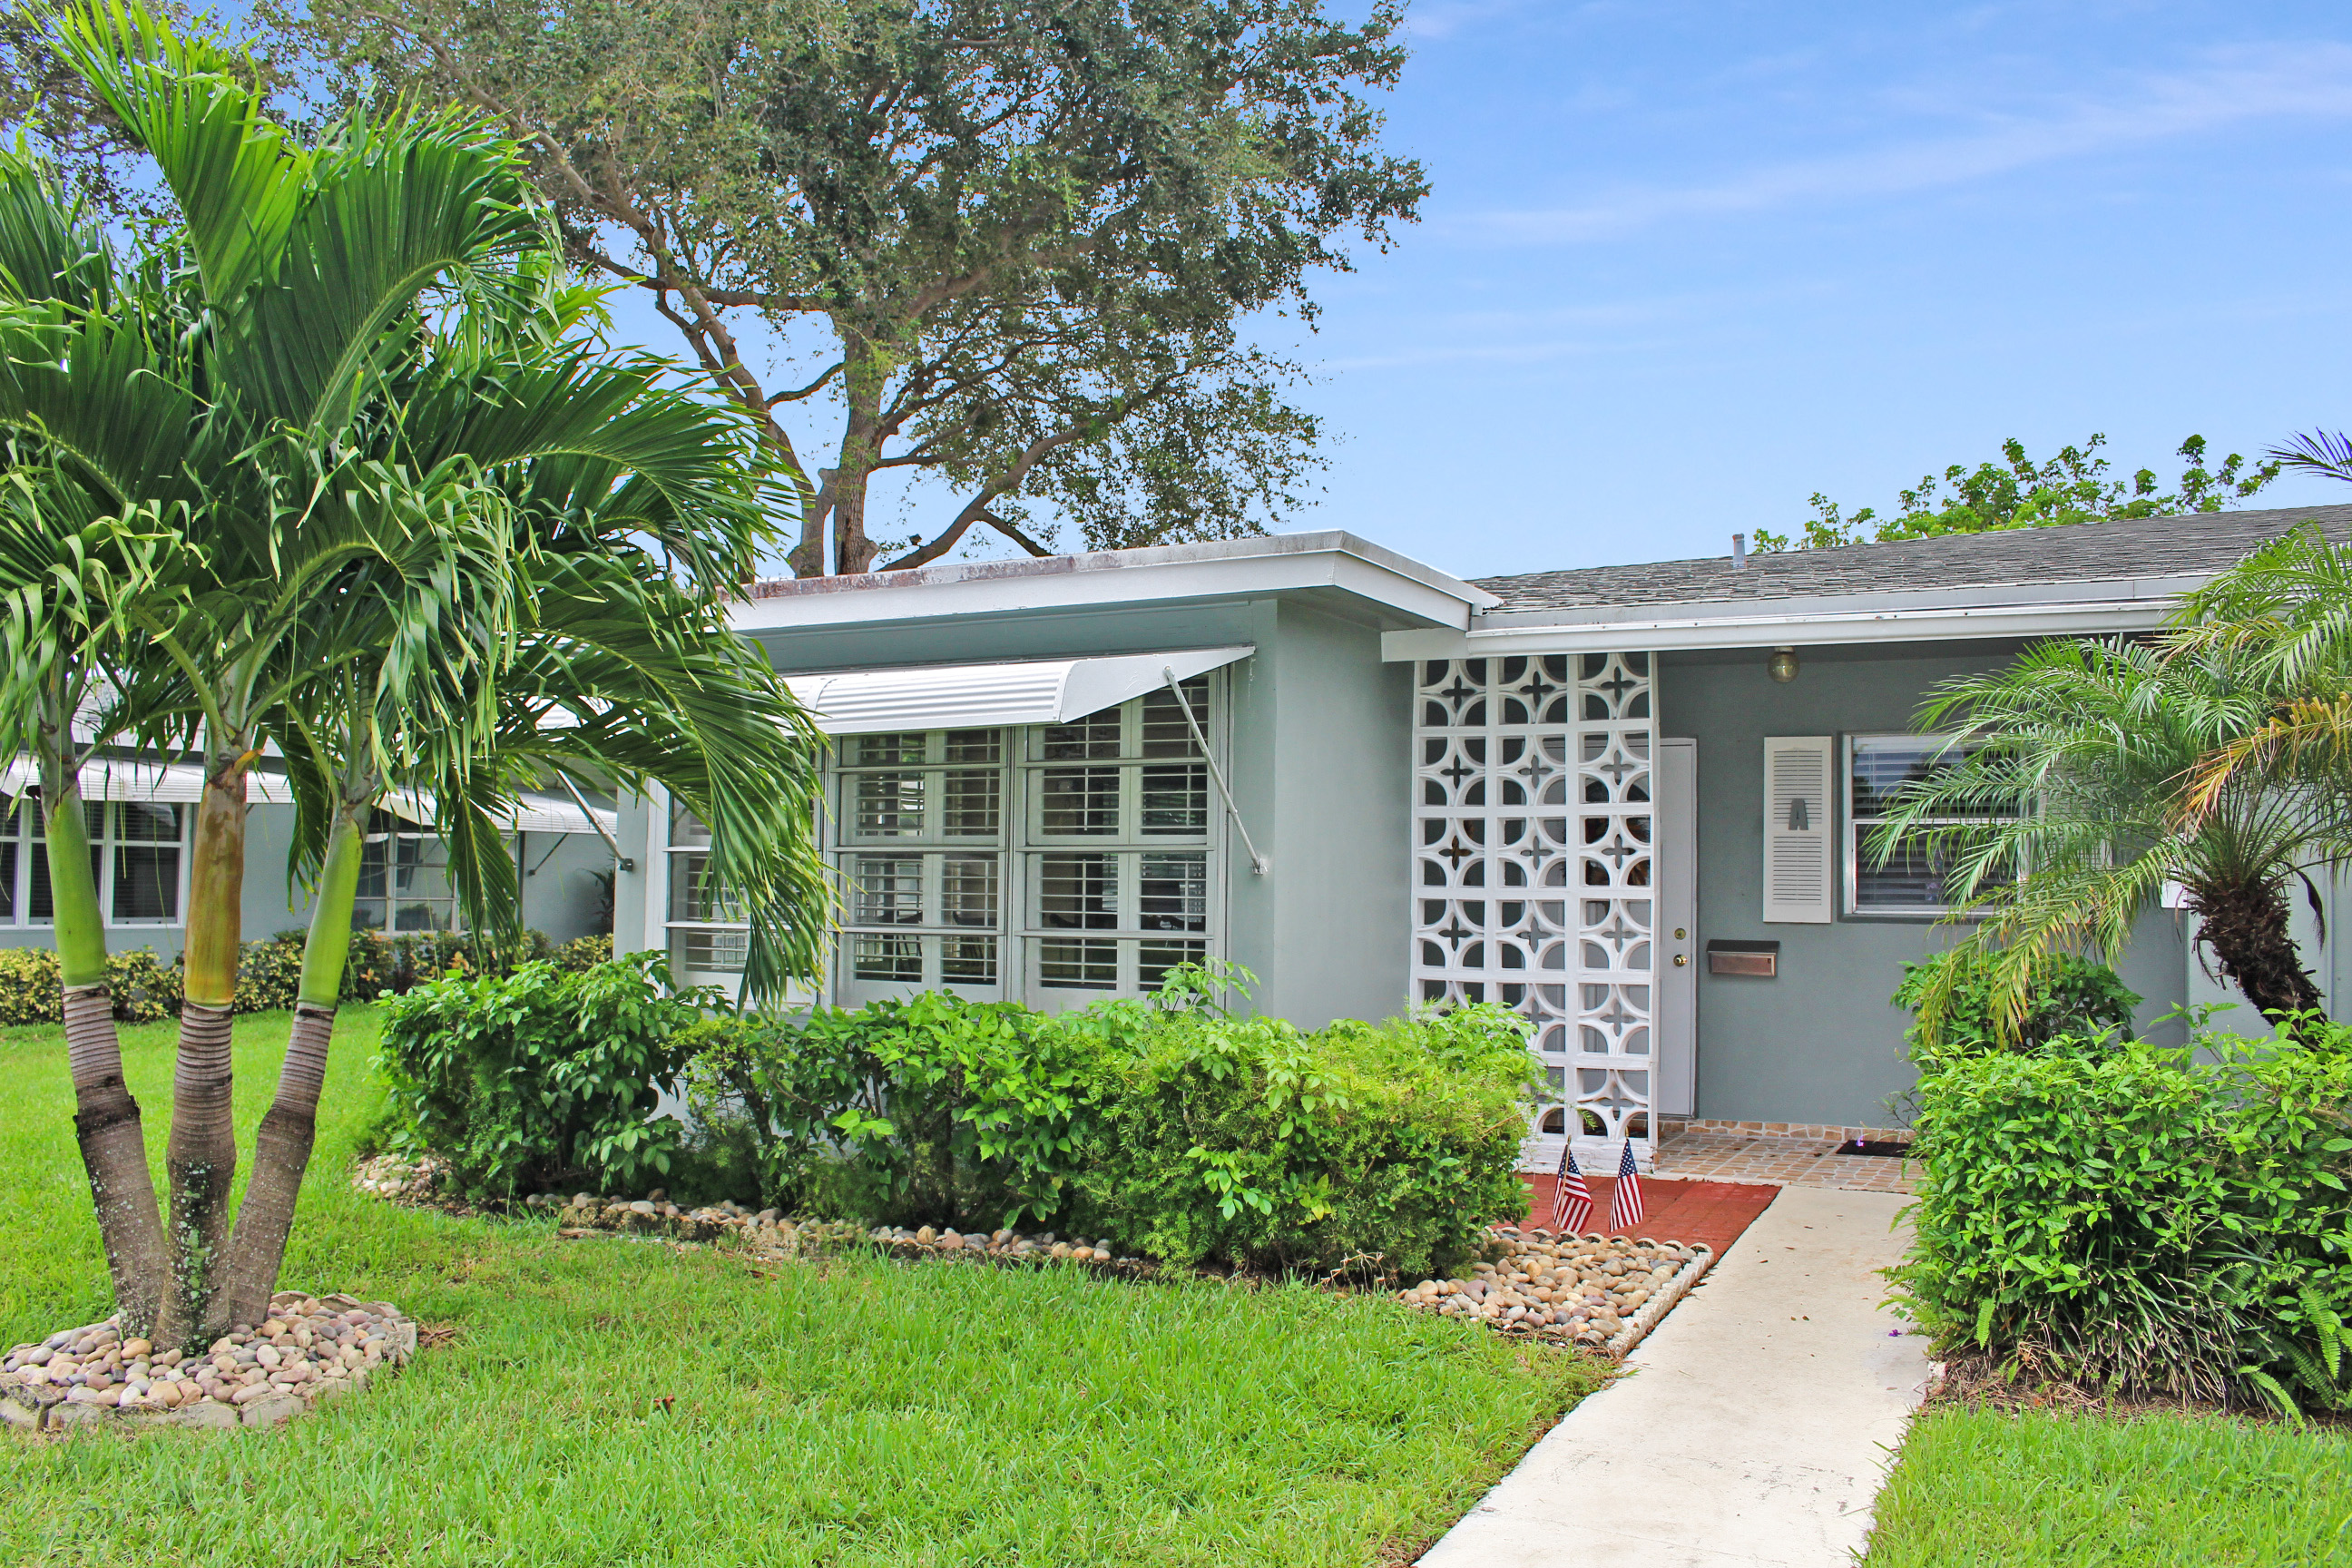 722 South Dr A, Delray Beach, FL 33445 Was Sold By Top Delray Beach Agents in High Point of Delray